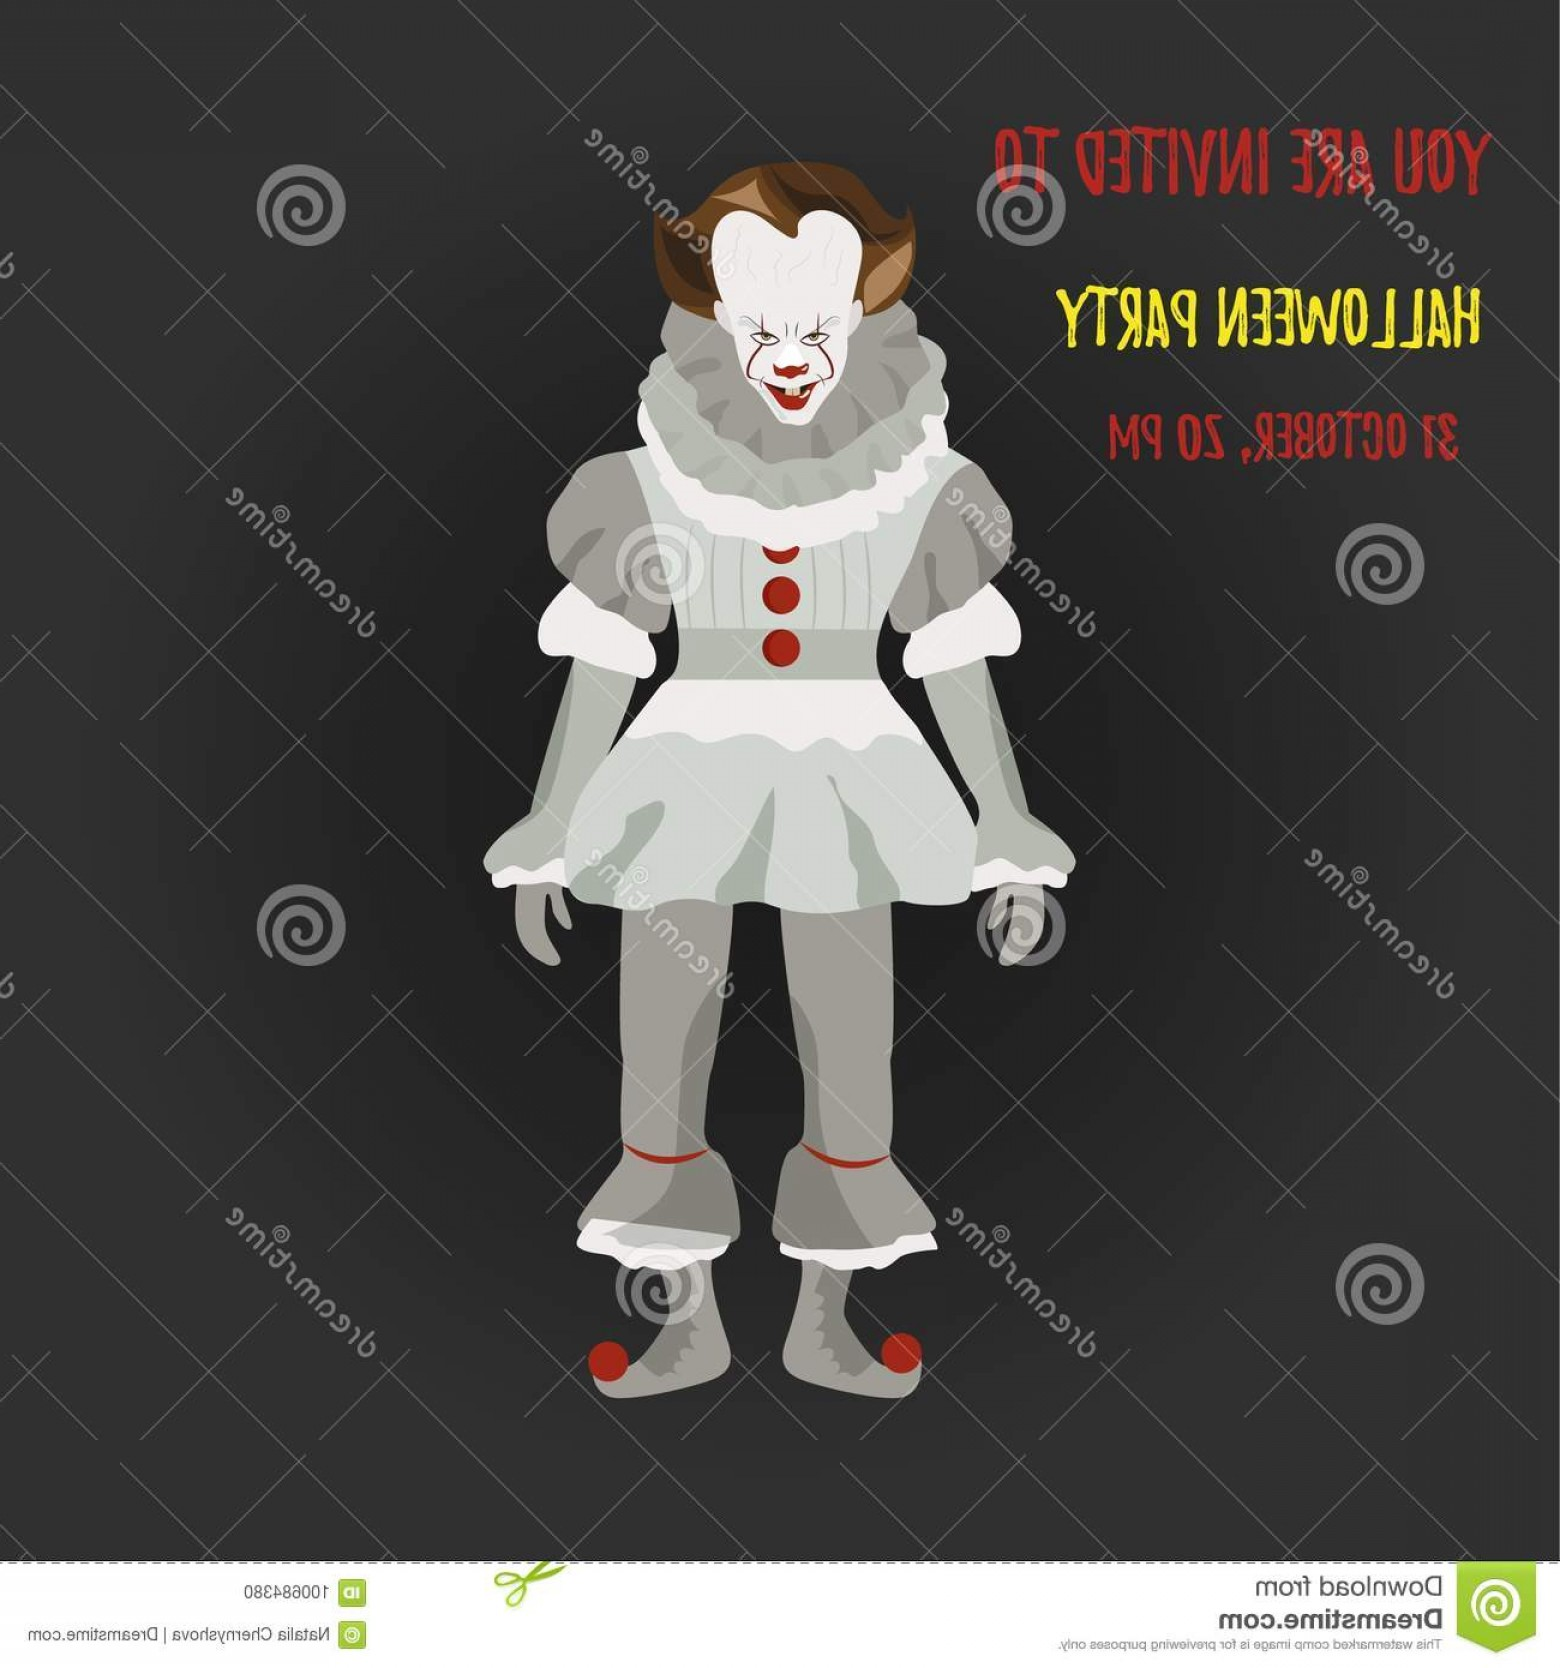 Pennywise Clown Vector: Halloween Evil Pennywise Clown Party Invitation Template Image